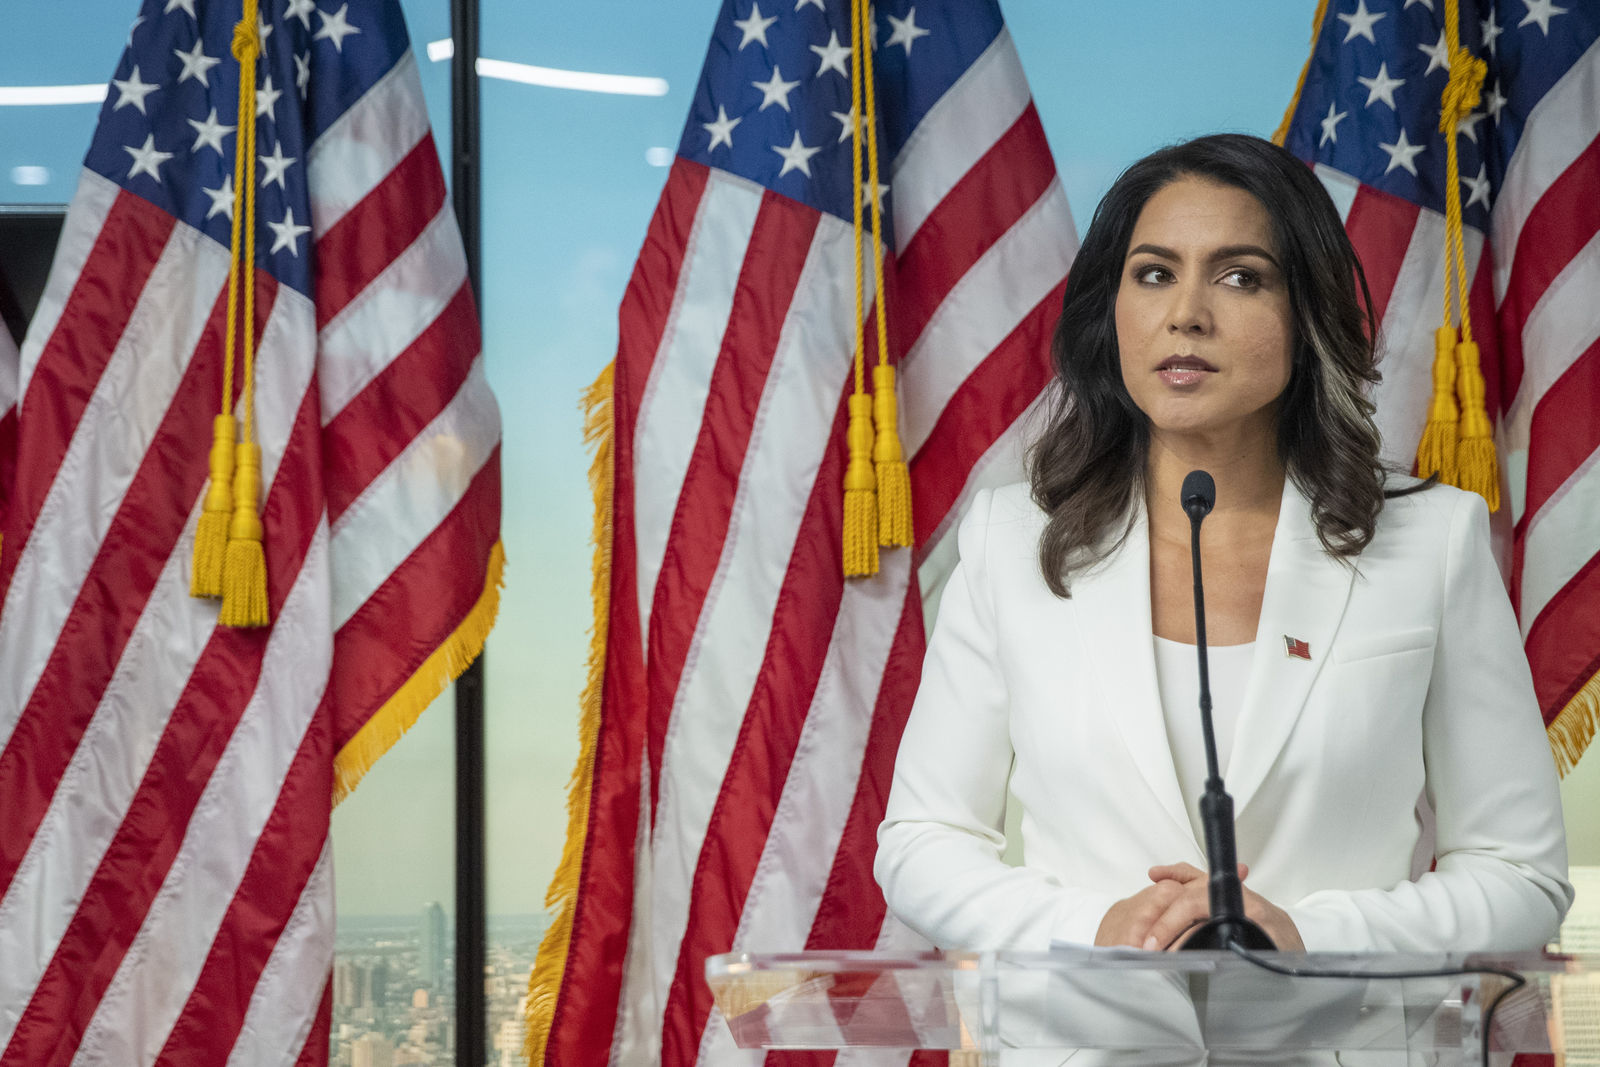 Democratic presidential candidate U.S. Rep. Tulsi Gabbard, D-Hawaii, speaks during a news conference at the 9/11 Tribute Museum, Tuesday, Oct. 29, 2019, in New York. (AP Photo/Mary Altaffer)